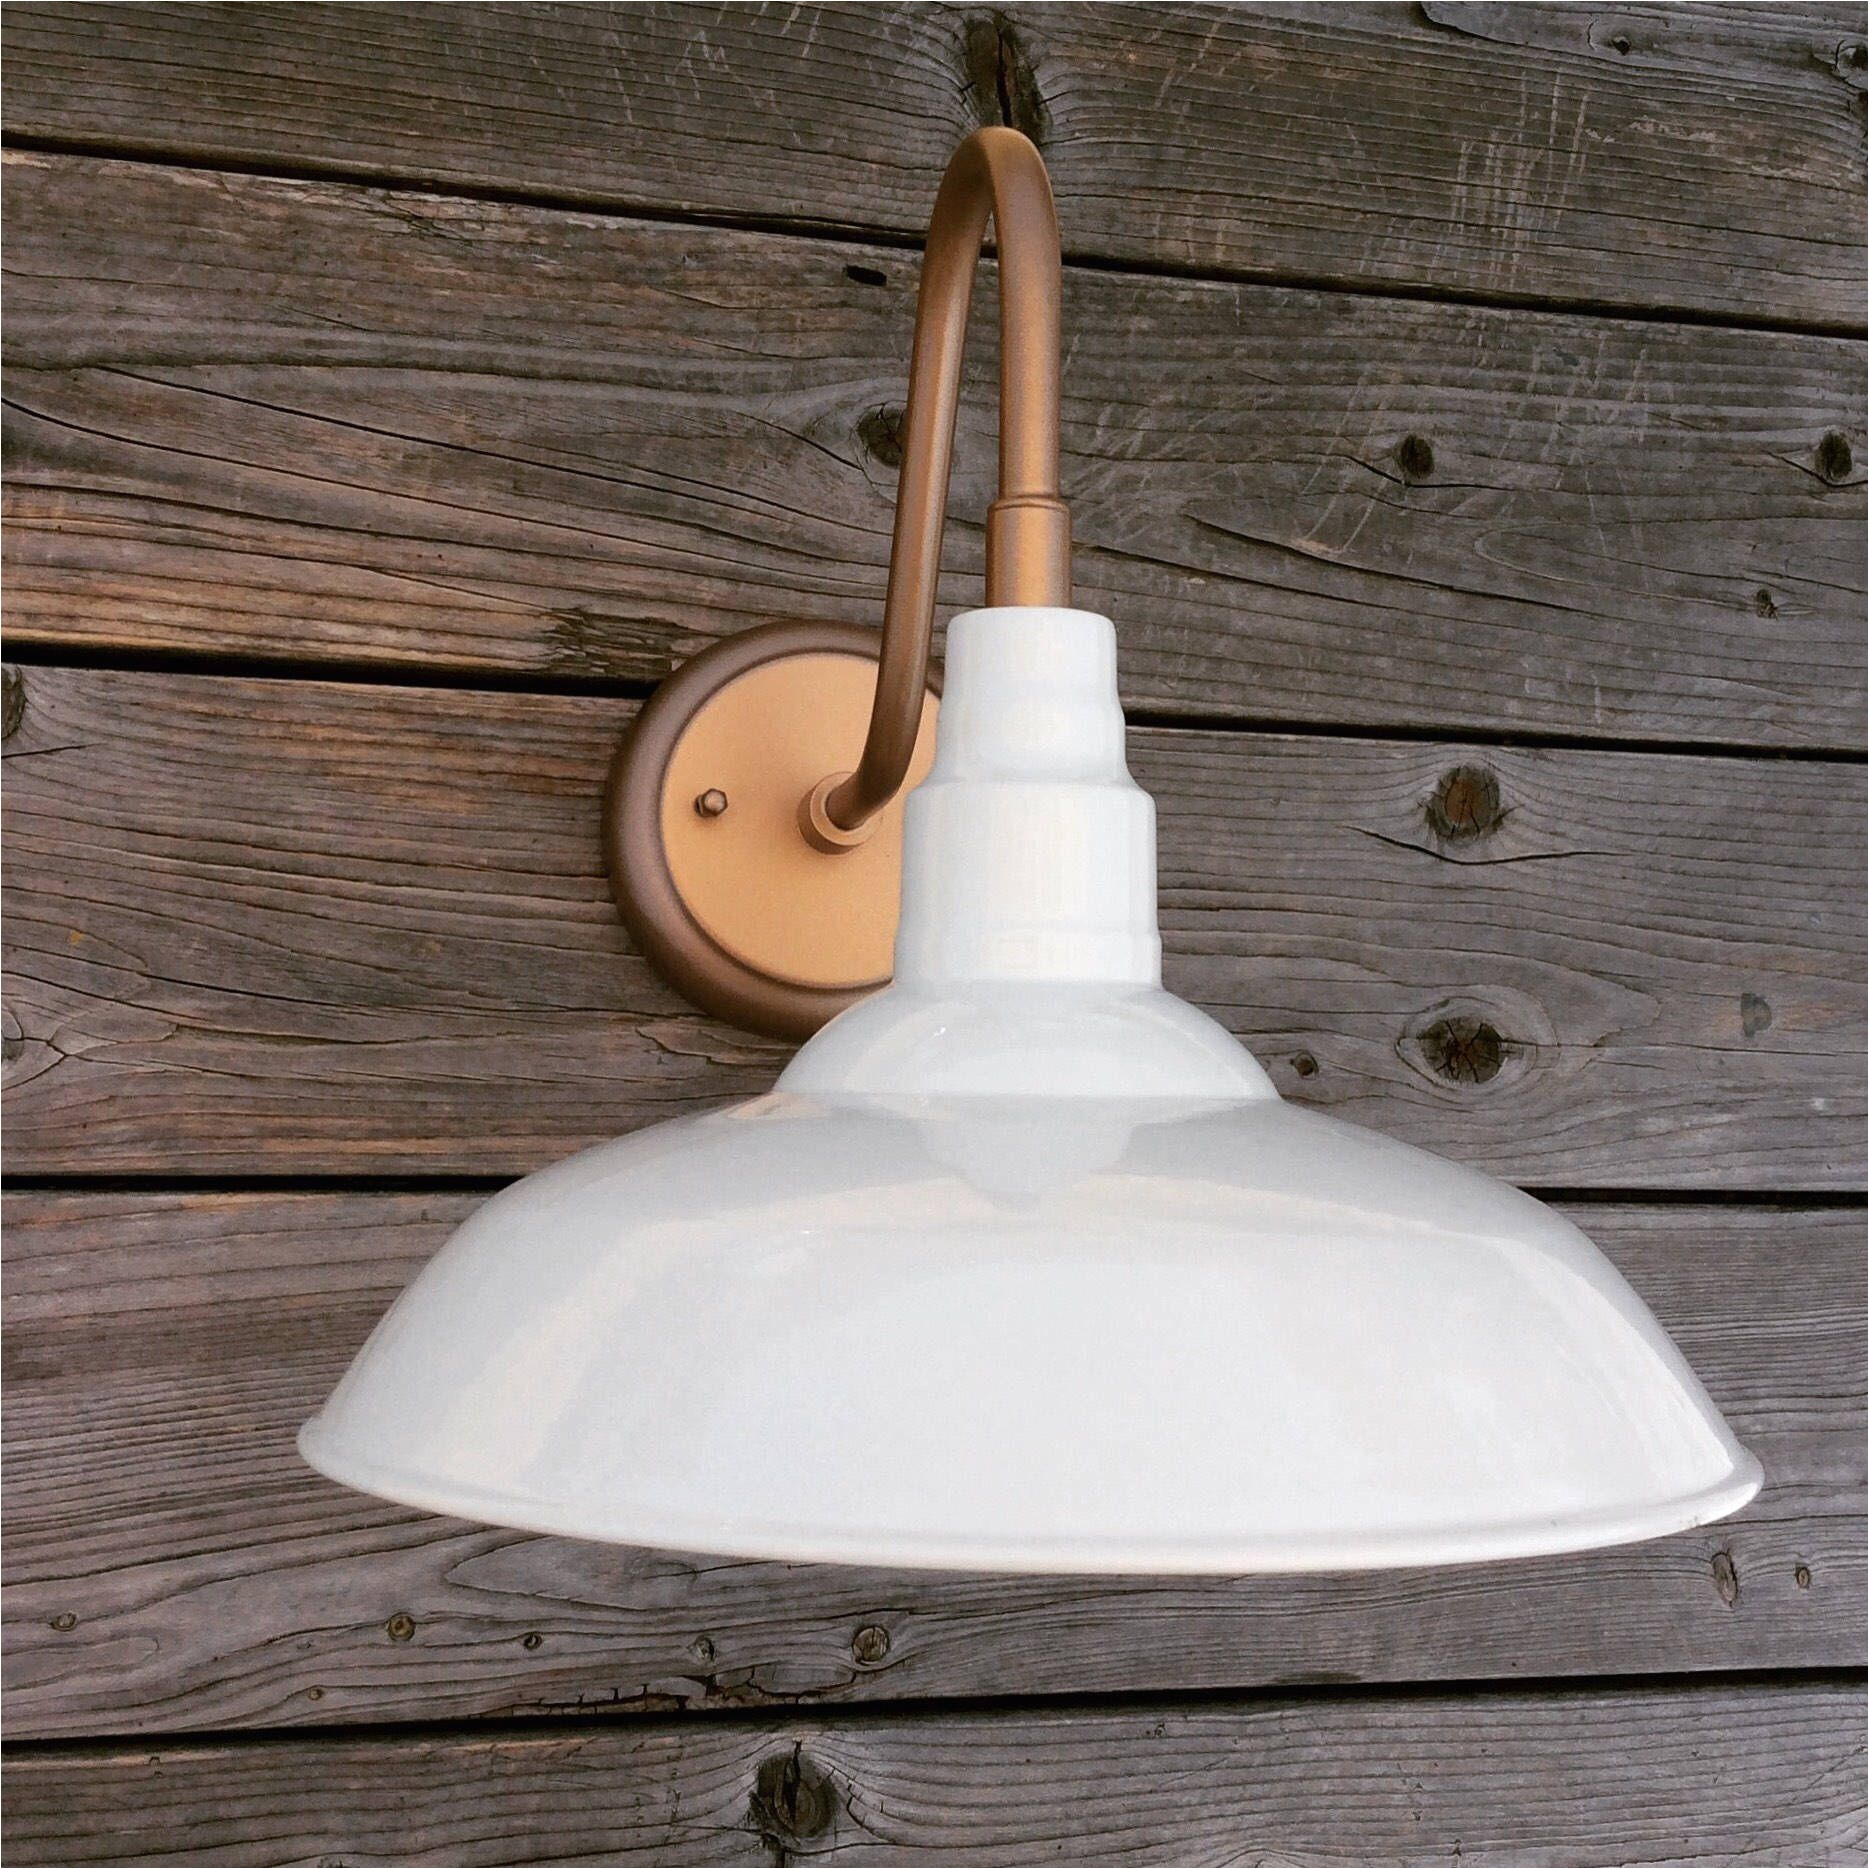 white copper outdoor industrial farmhouse gooseneck barn light by thereare4lights on etsy https